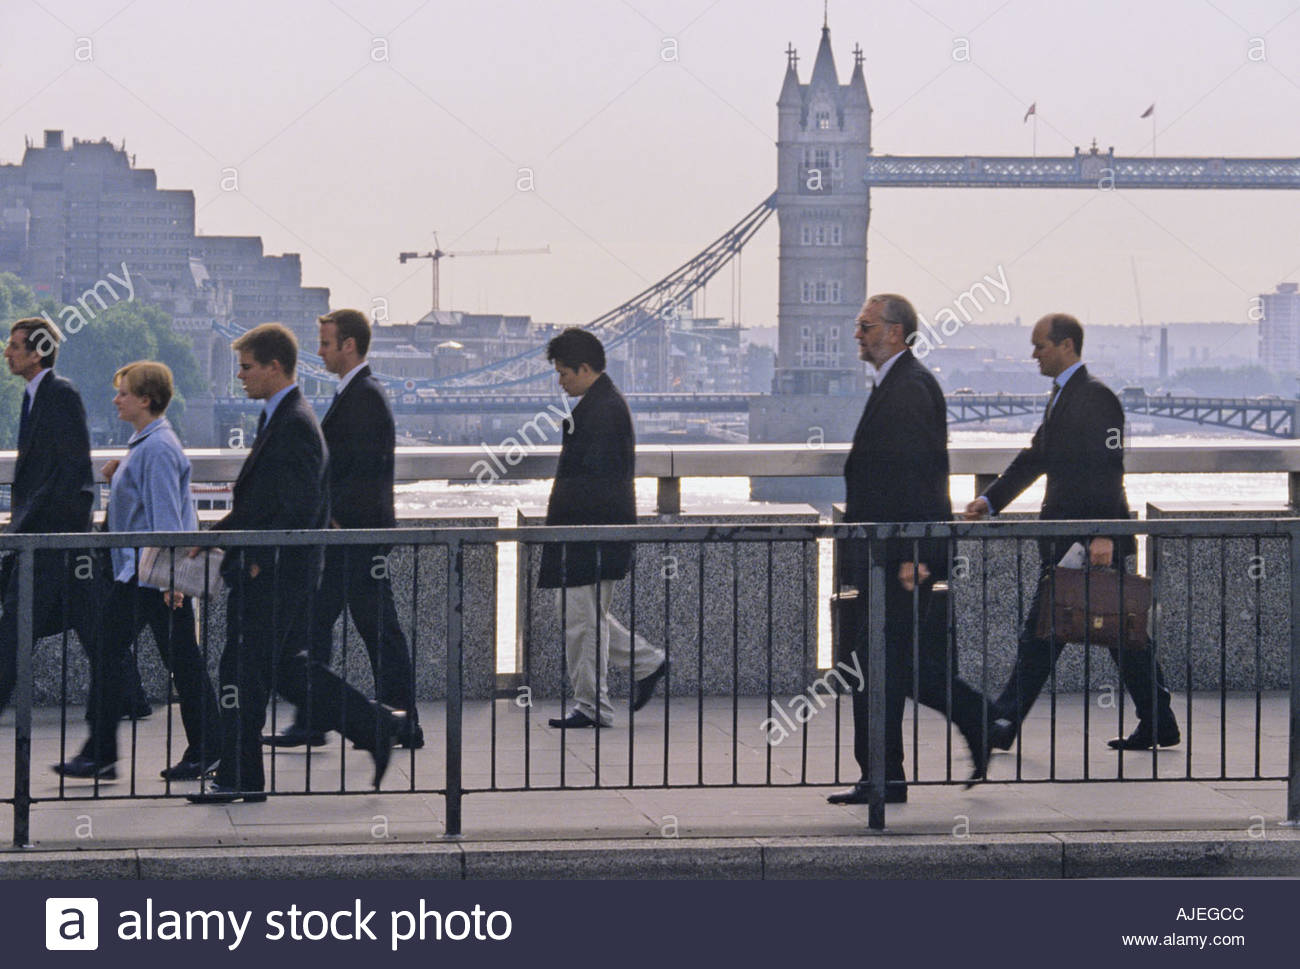 Commuters walk over London Bridge in the morning going to work in the City; Tower Bridge in the background - Stock Image